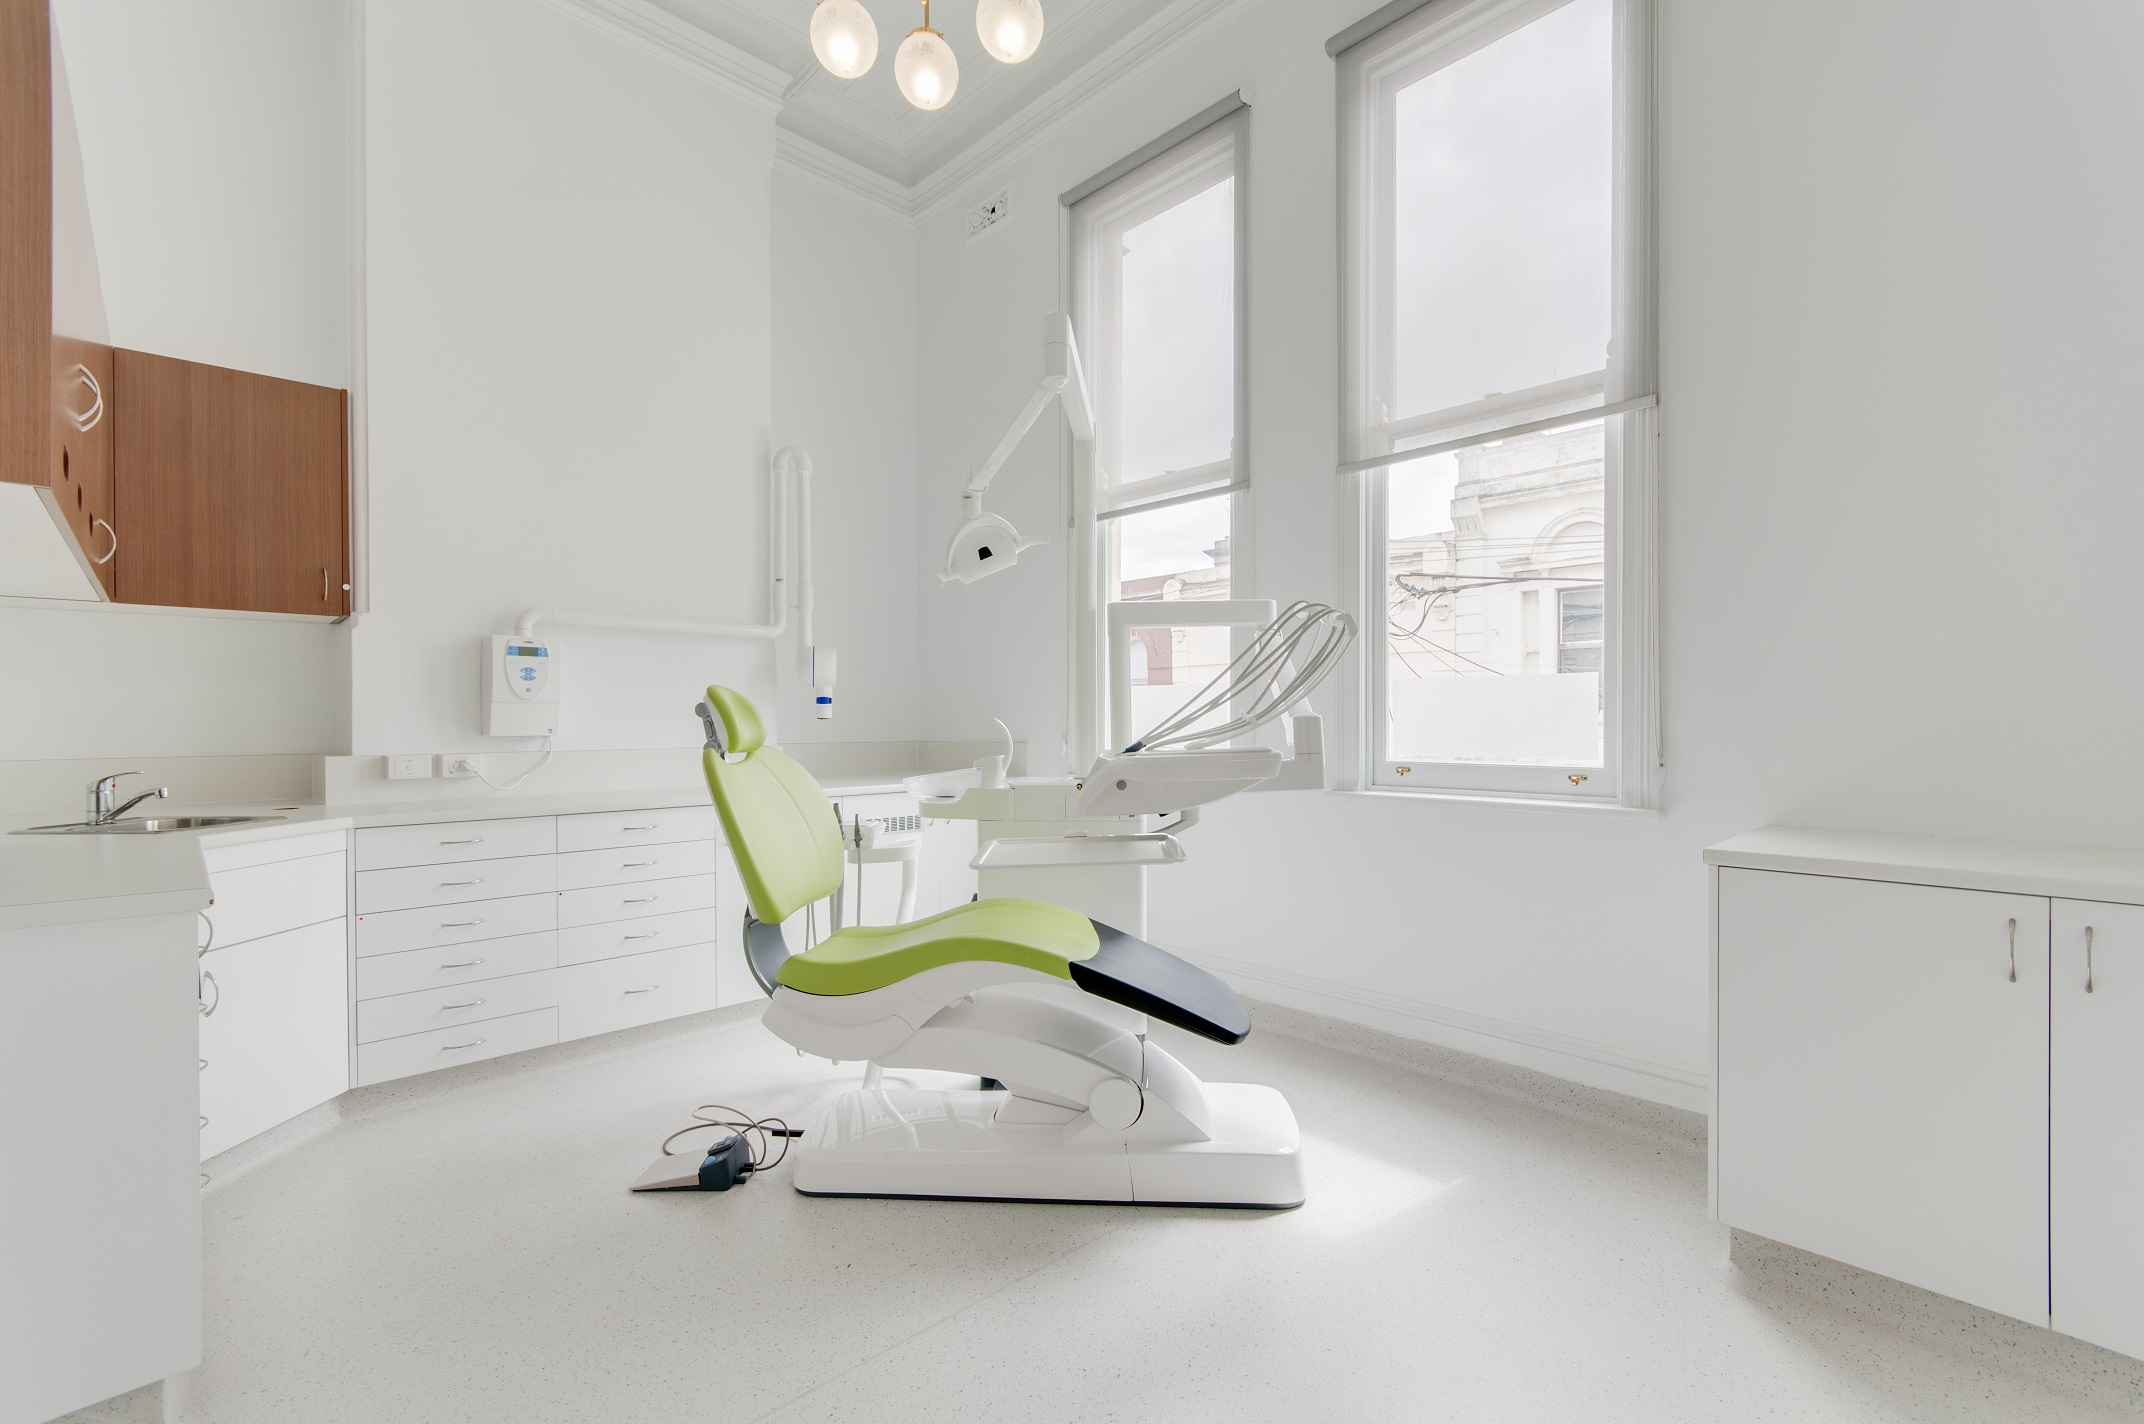 Case study: Choice Dental Group